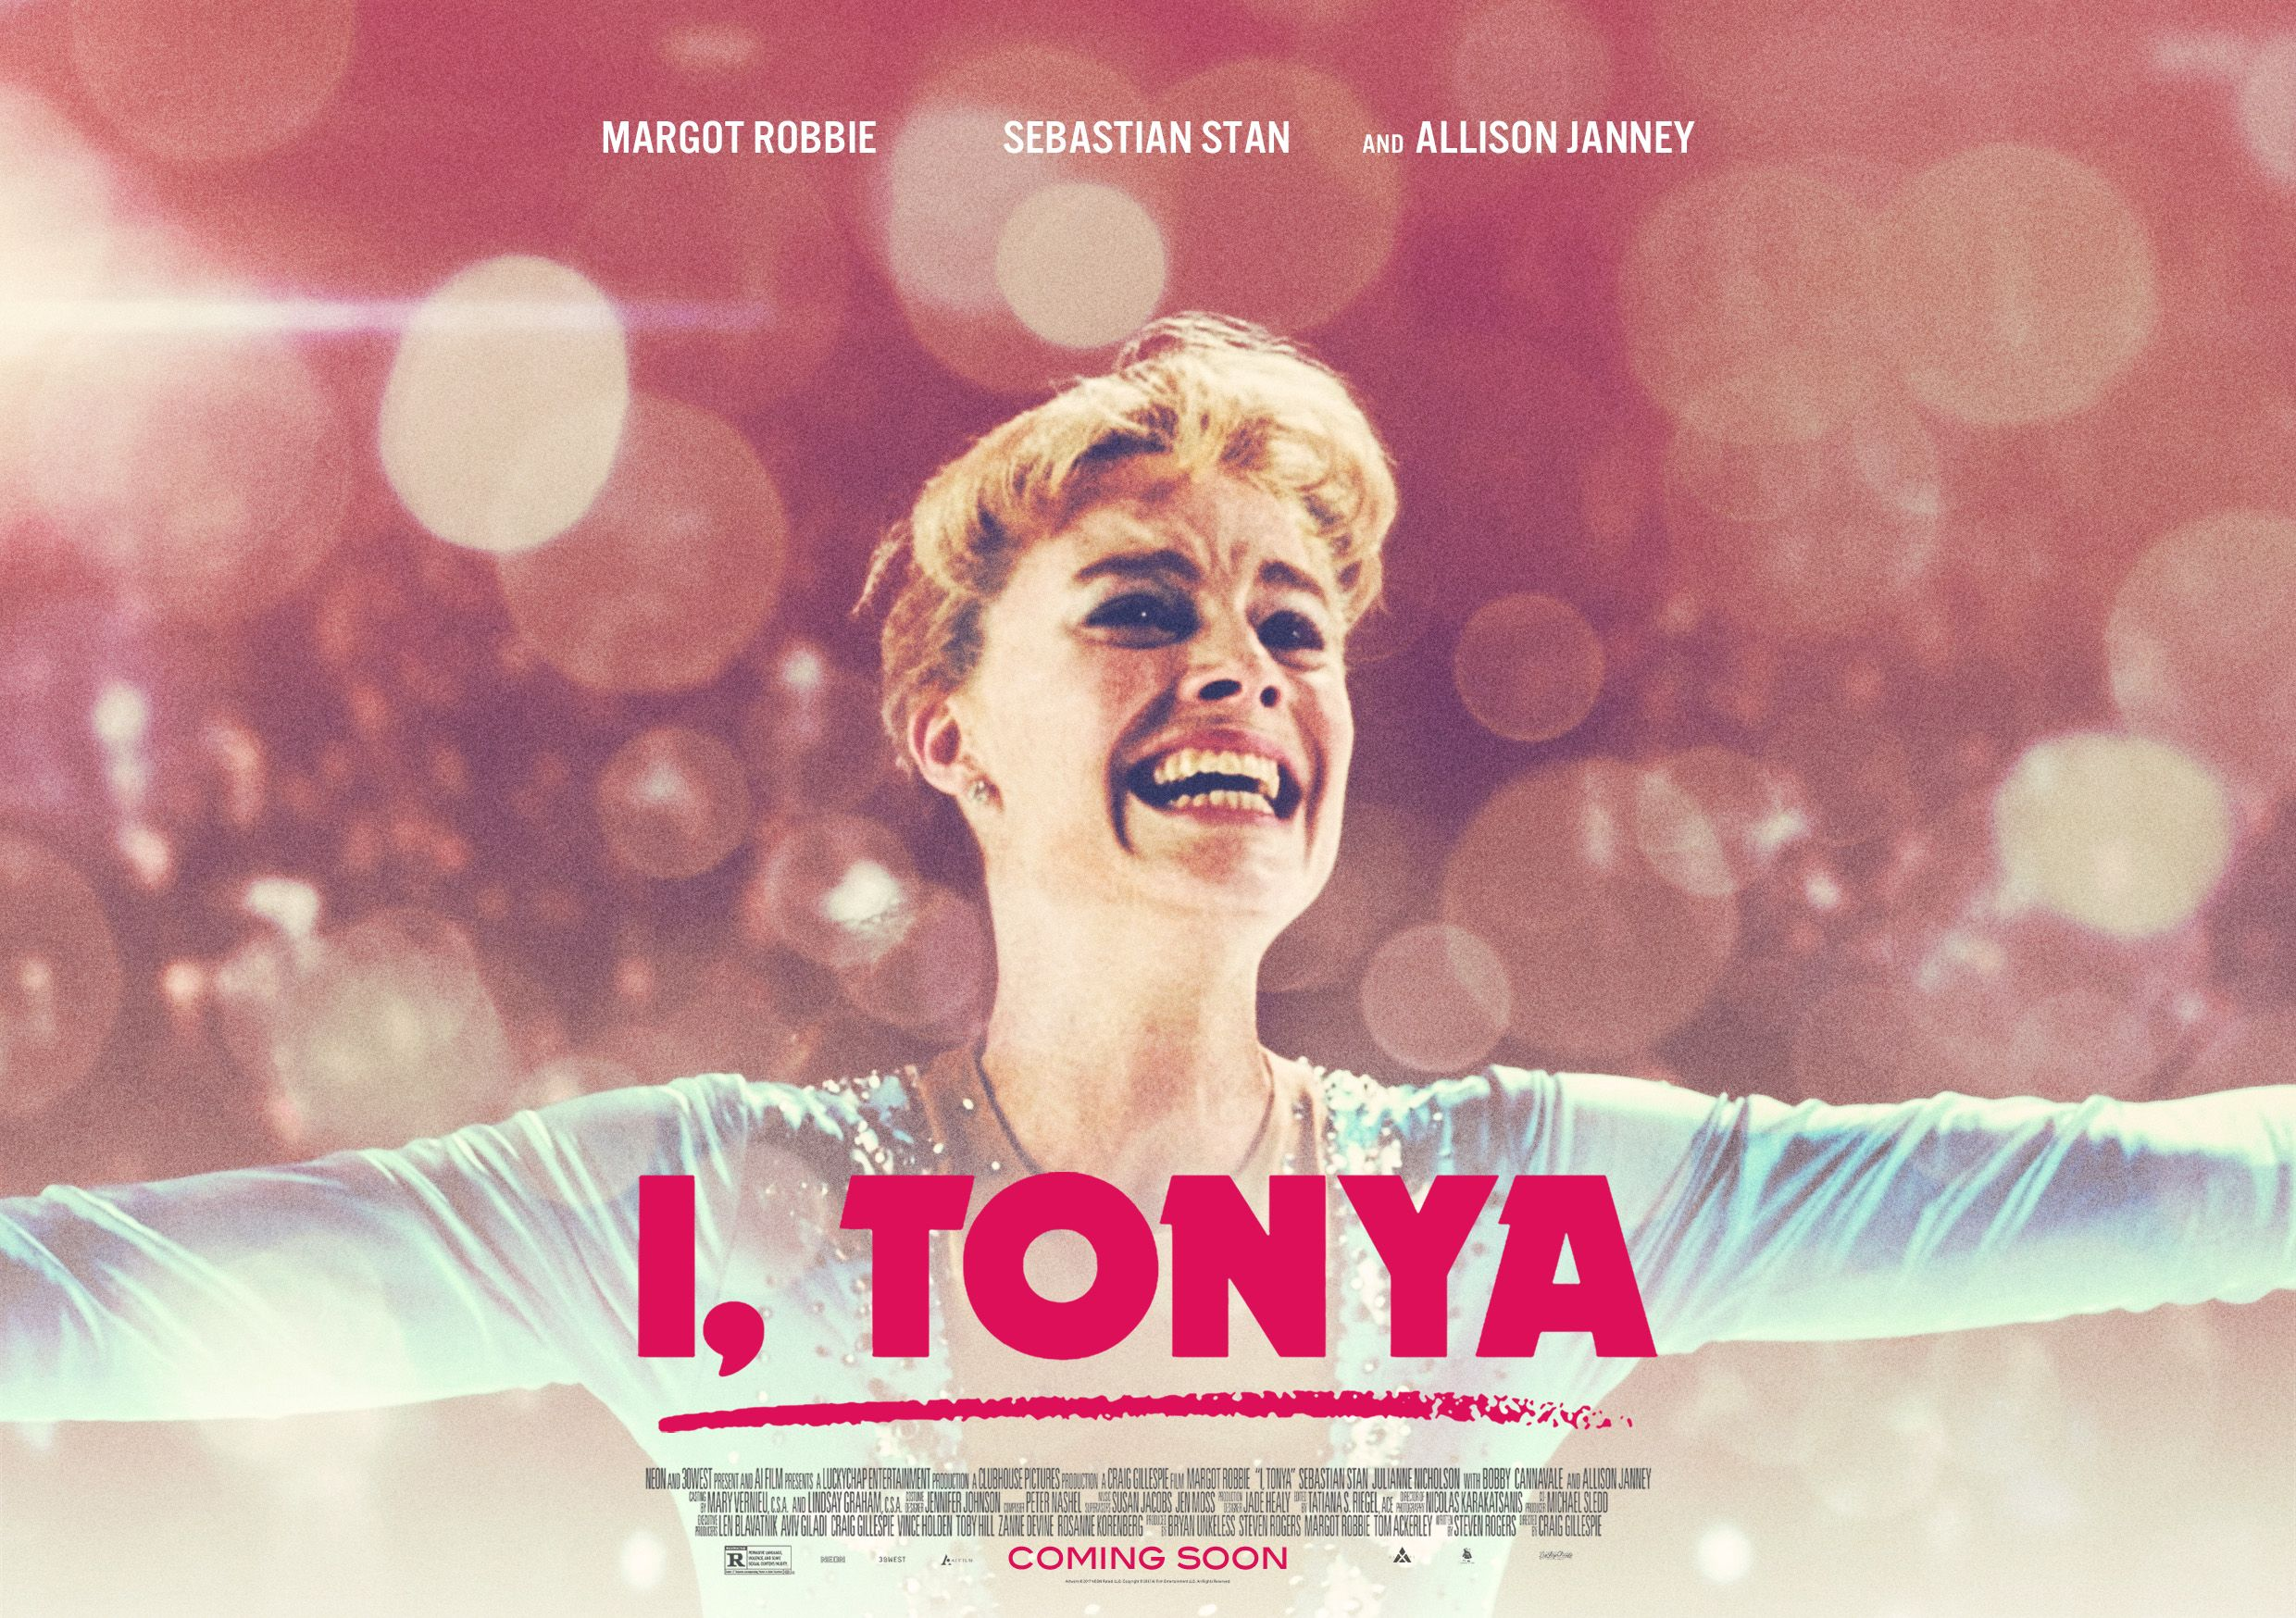 I, Tonya - Poster by Alecxps   films in 2018   Pinterest   Films and ...